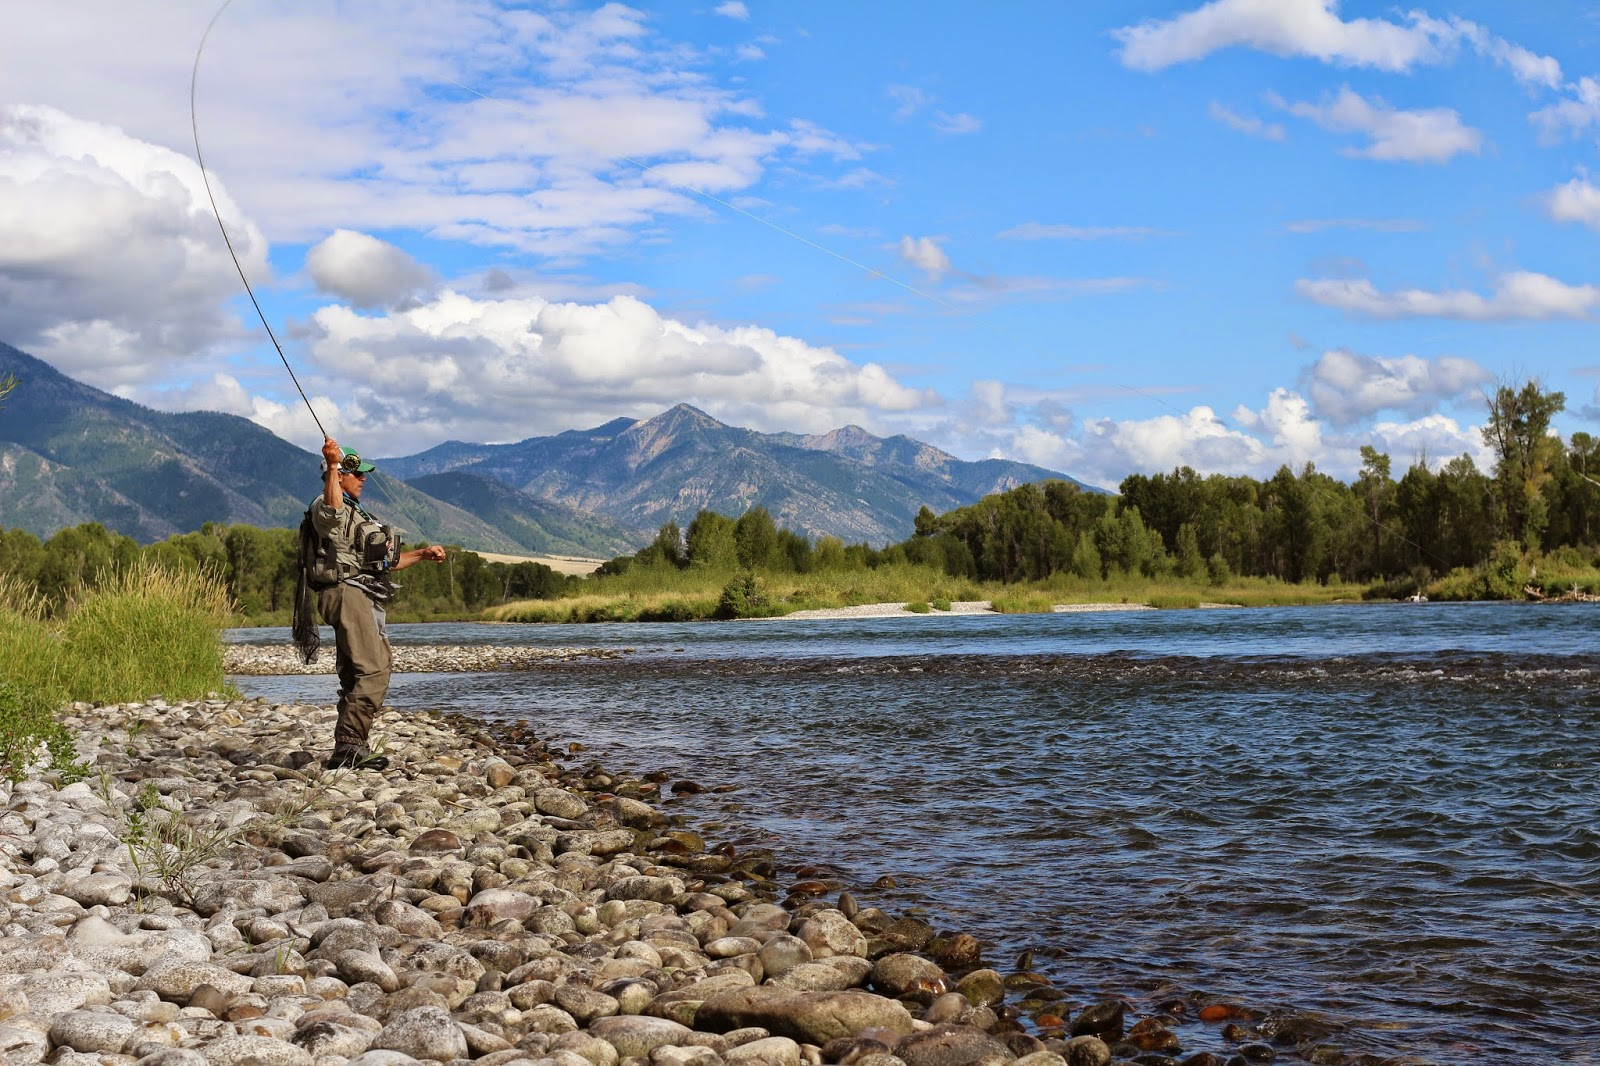 Jay scott outdoors jackson hole wyoming fly fishing photos 10 for Fly fishing photography